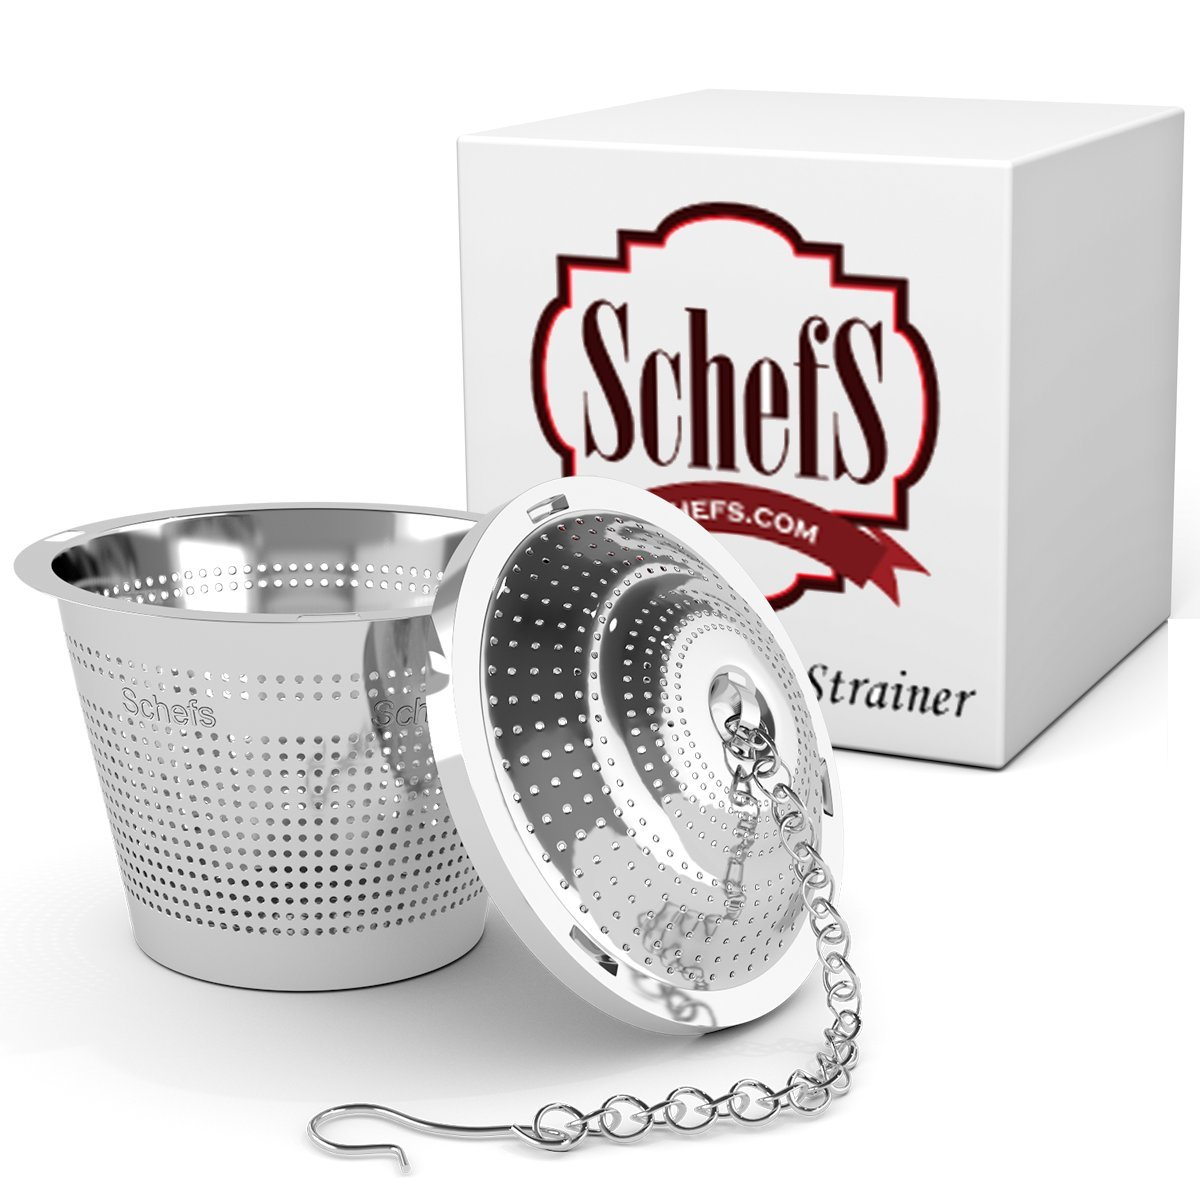 Schefs Multi Cup Premium Tea Infuser - Stainless Steel - Perfect Strainer for Loose Leaf Tea in the Kettle or for a Pitcher of Iced Tea. SCTIFB-2